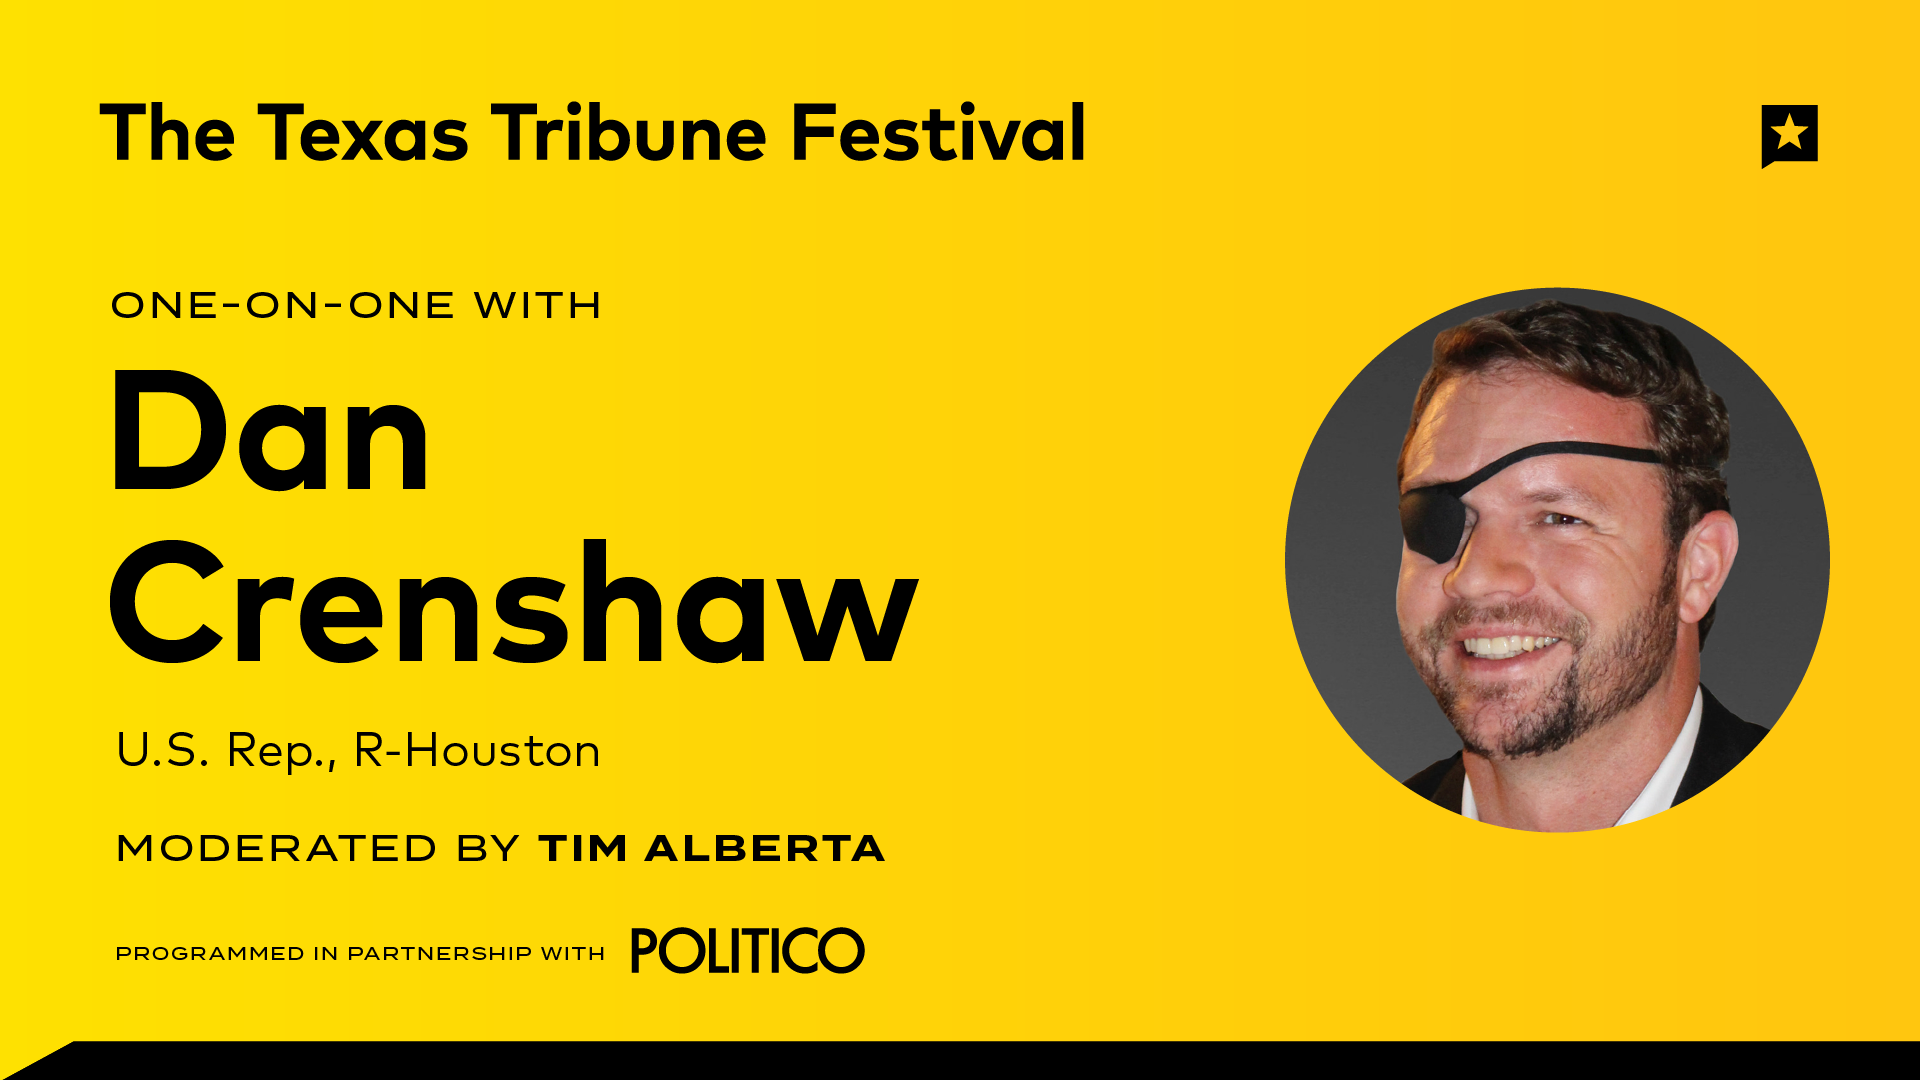 Politico-LIVE at The Texas Tribune Festival: One-on-One with Dan Crenshaw